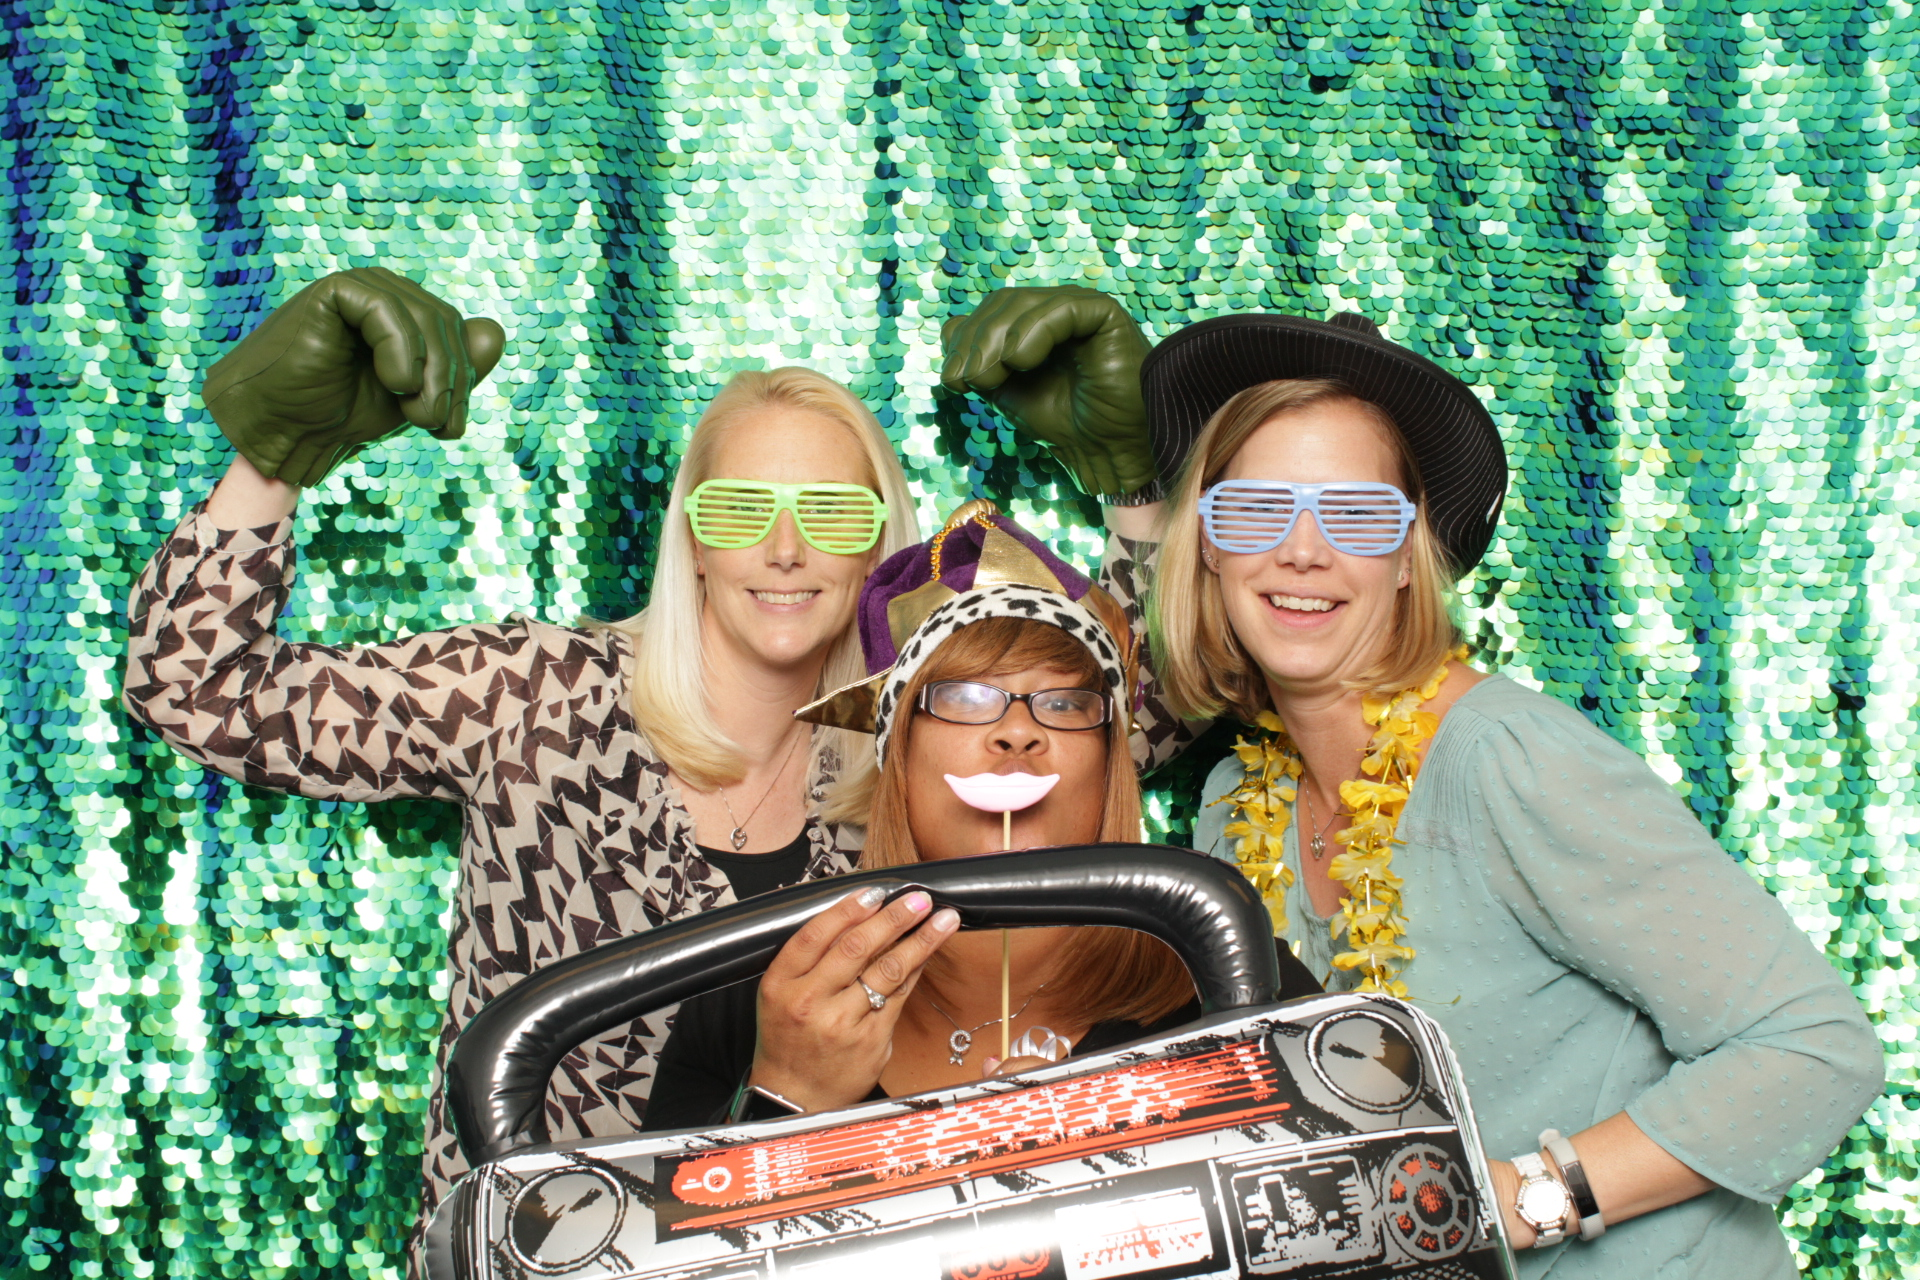 Philadelphia photo booth rental for weddings, parties and special events